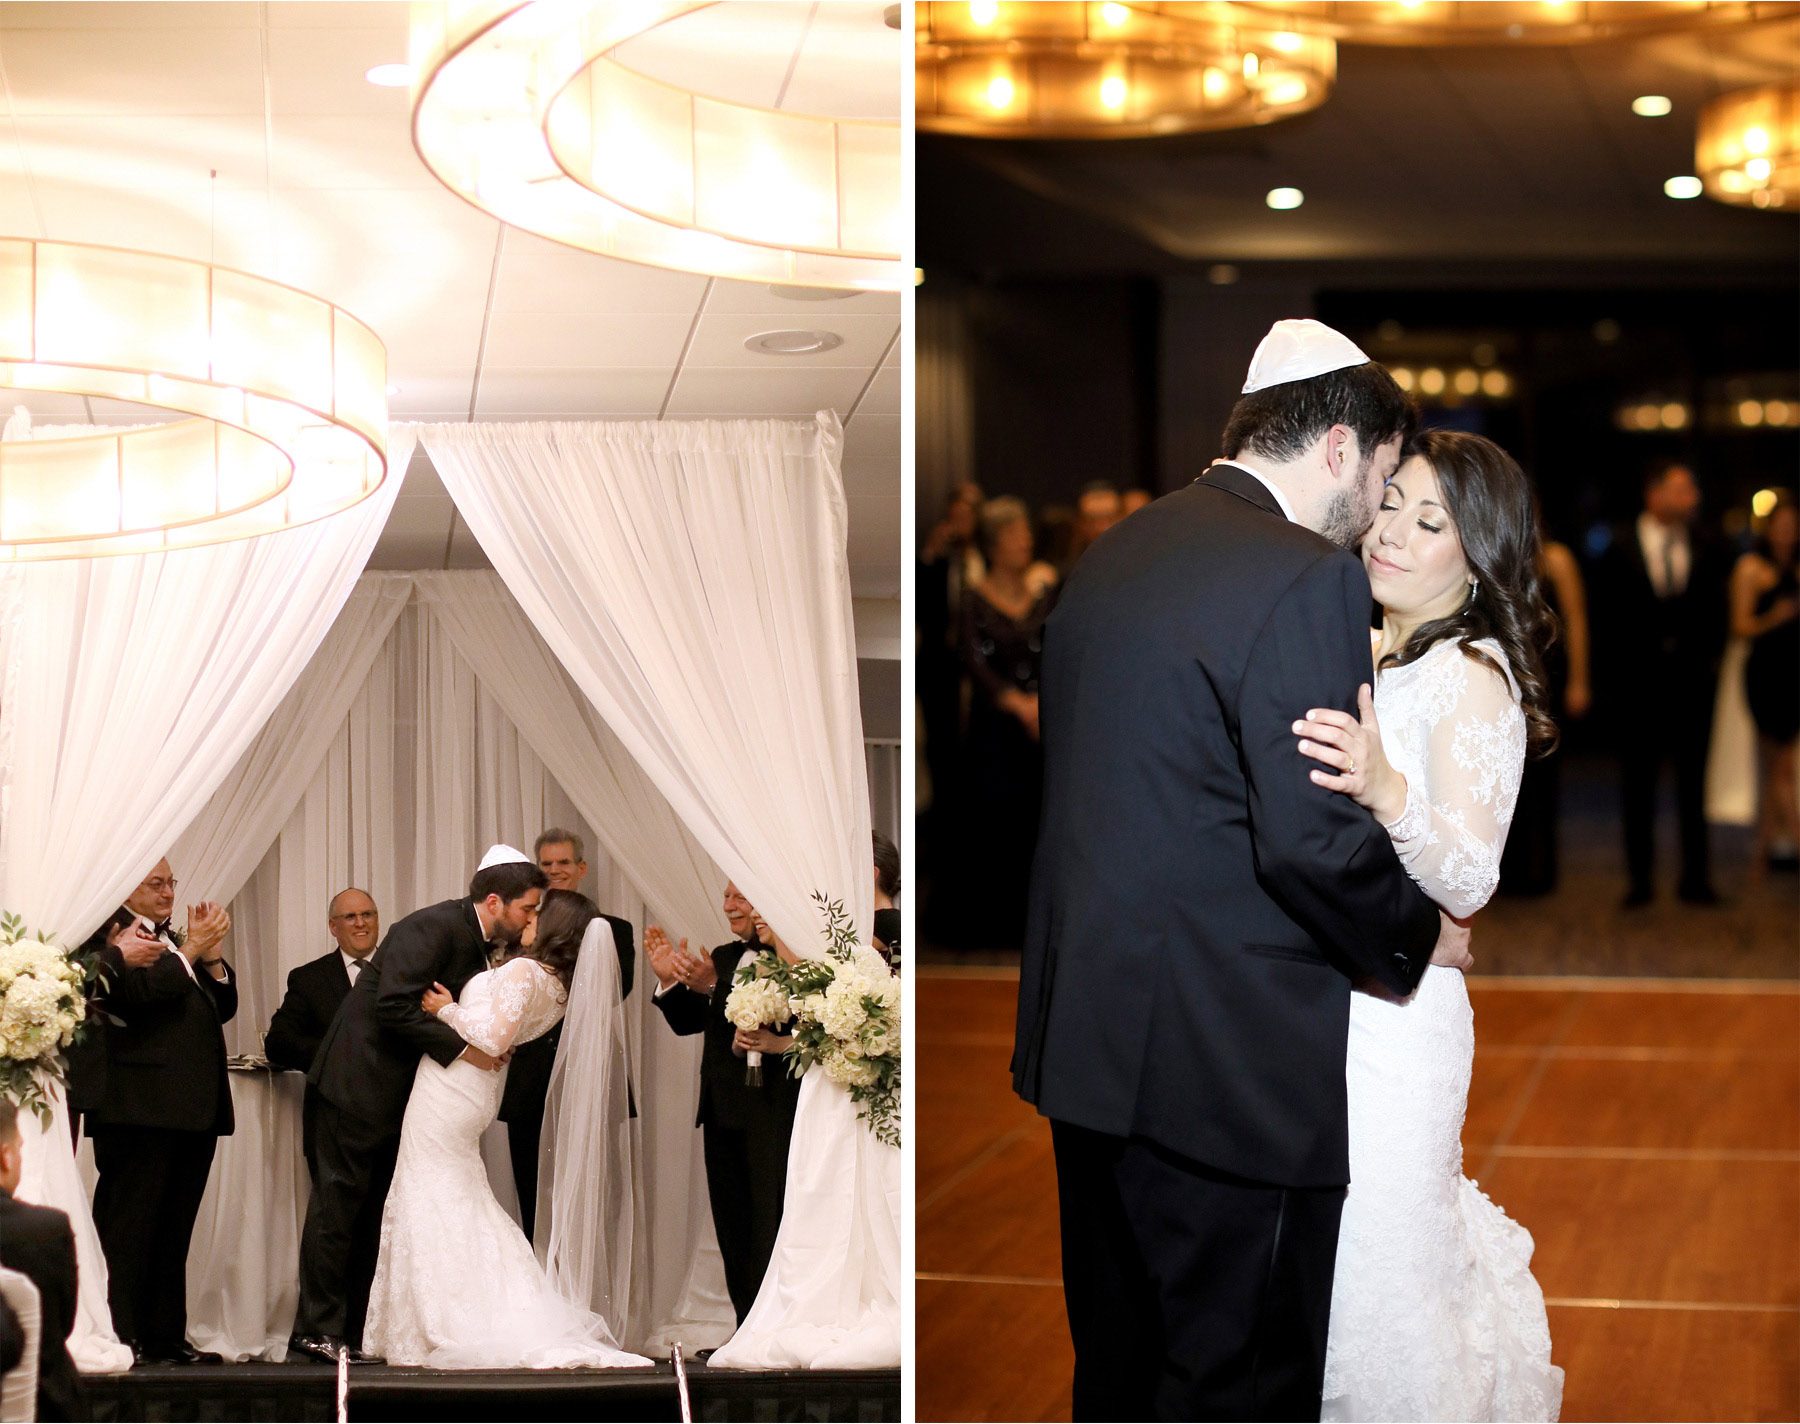 13-Minneapolis-Minnesota-Wedding-Photographer-by-Andrew-Vick-Photography-Winter-Hyatt-Regency-Hotel-Ceremony-Bride-Groom-Kiss-Yarmulke-Chuppah-Reception-Dance-Amy-and-Jordan.jpg